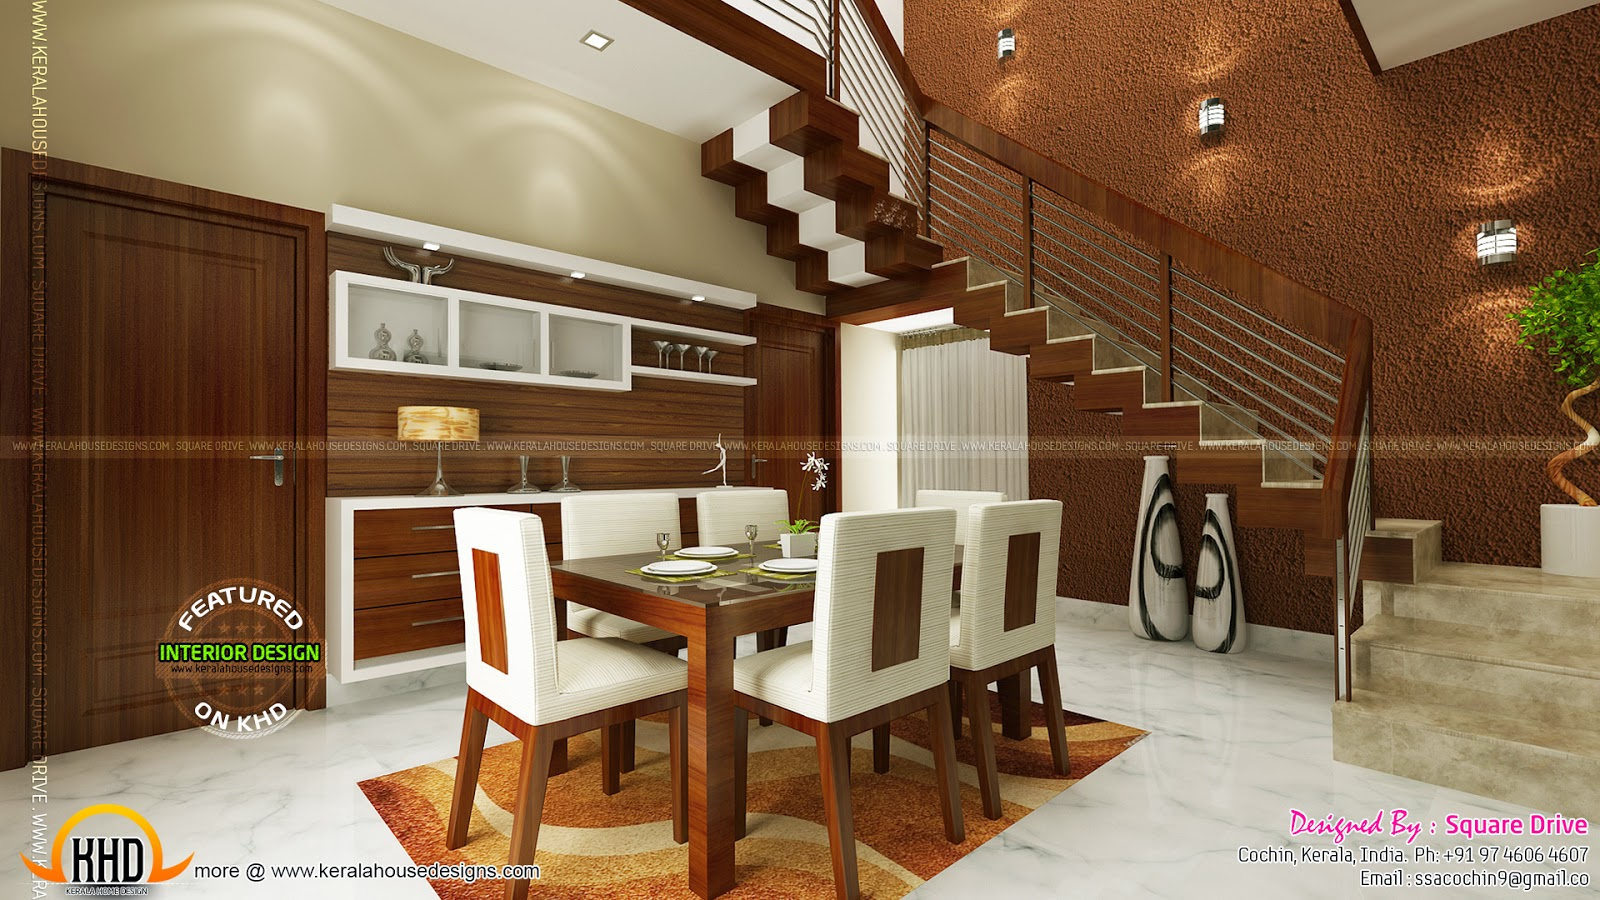 Cochin interior design kerala home design and floor plans for Interior design ideas for small homes in kerala